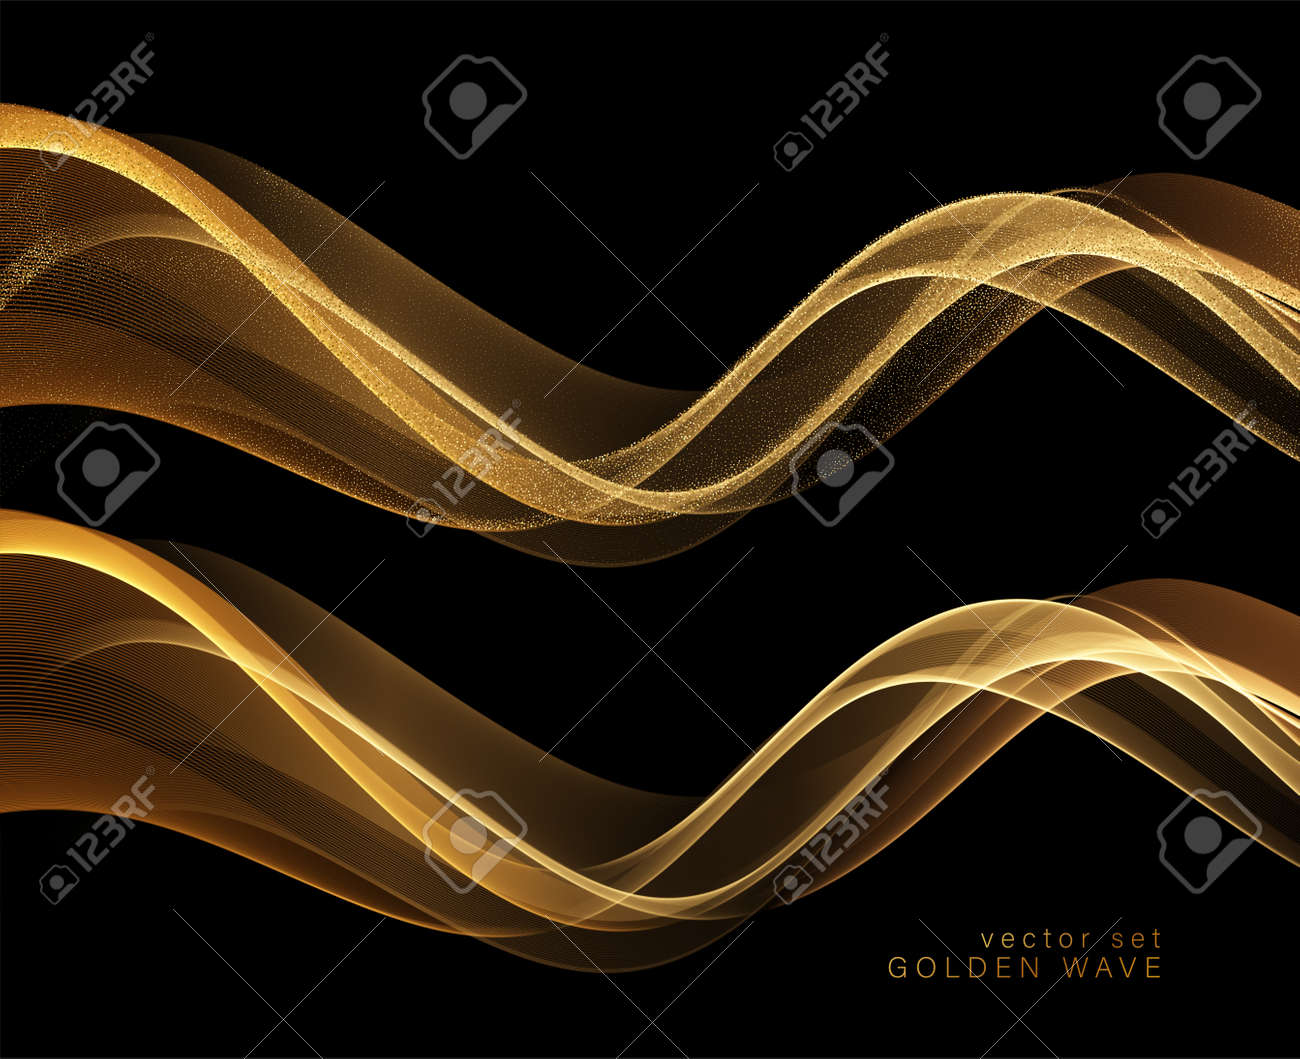 Abstract shiny color gold wave design element - 168453763